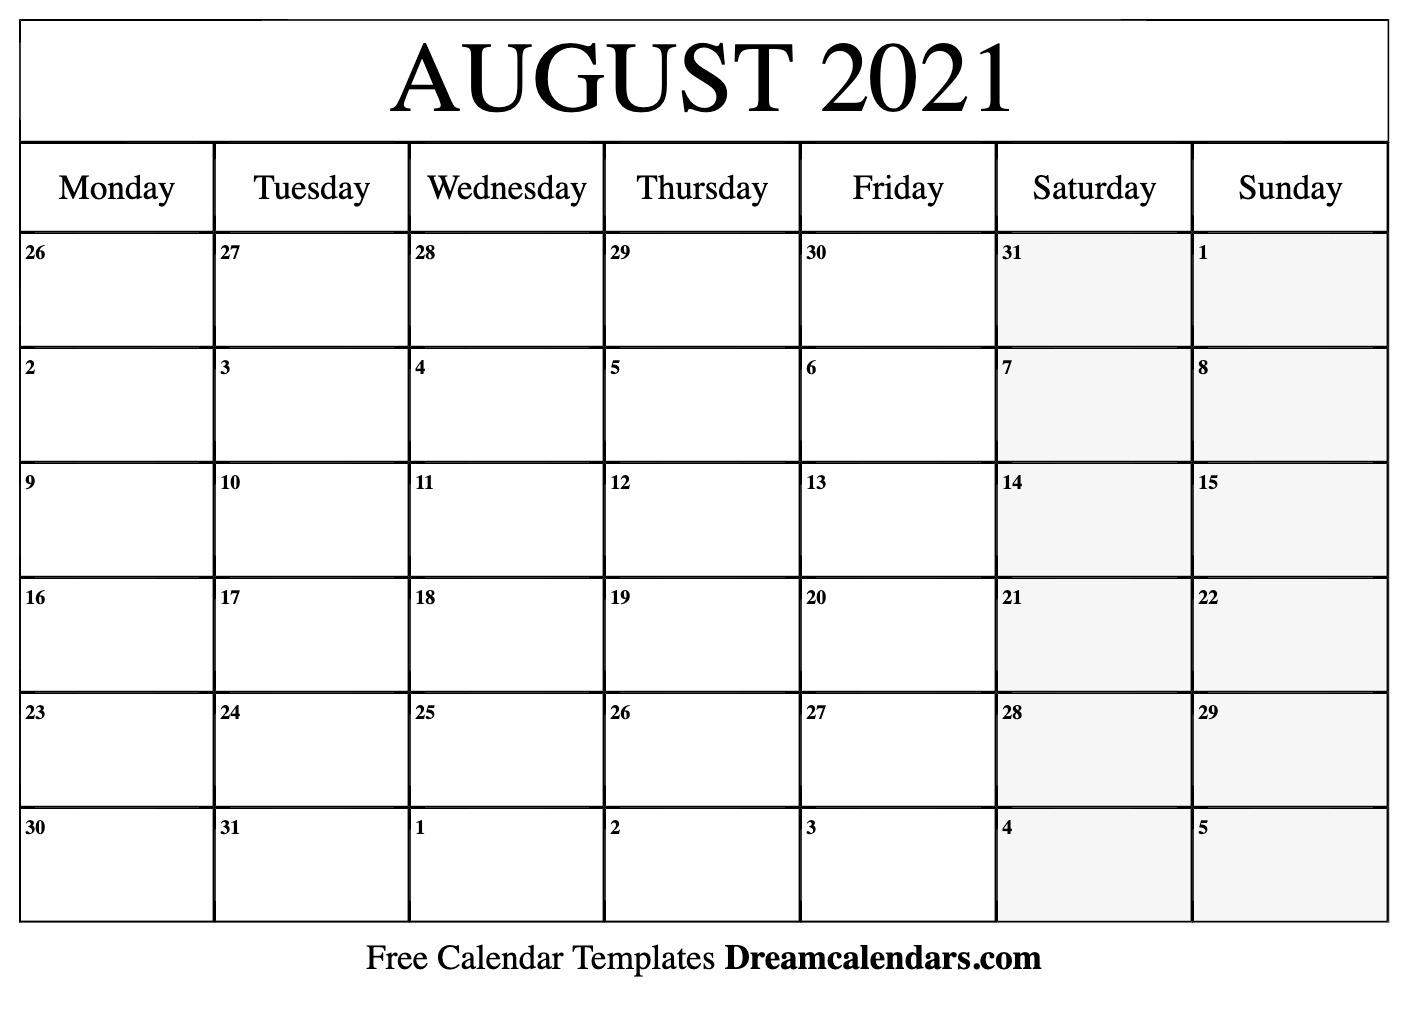 Collect August 2021 Fresh Calenders Download And Save To Word